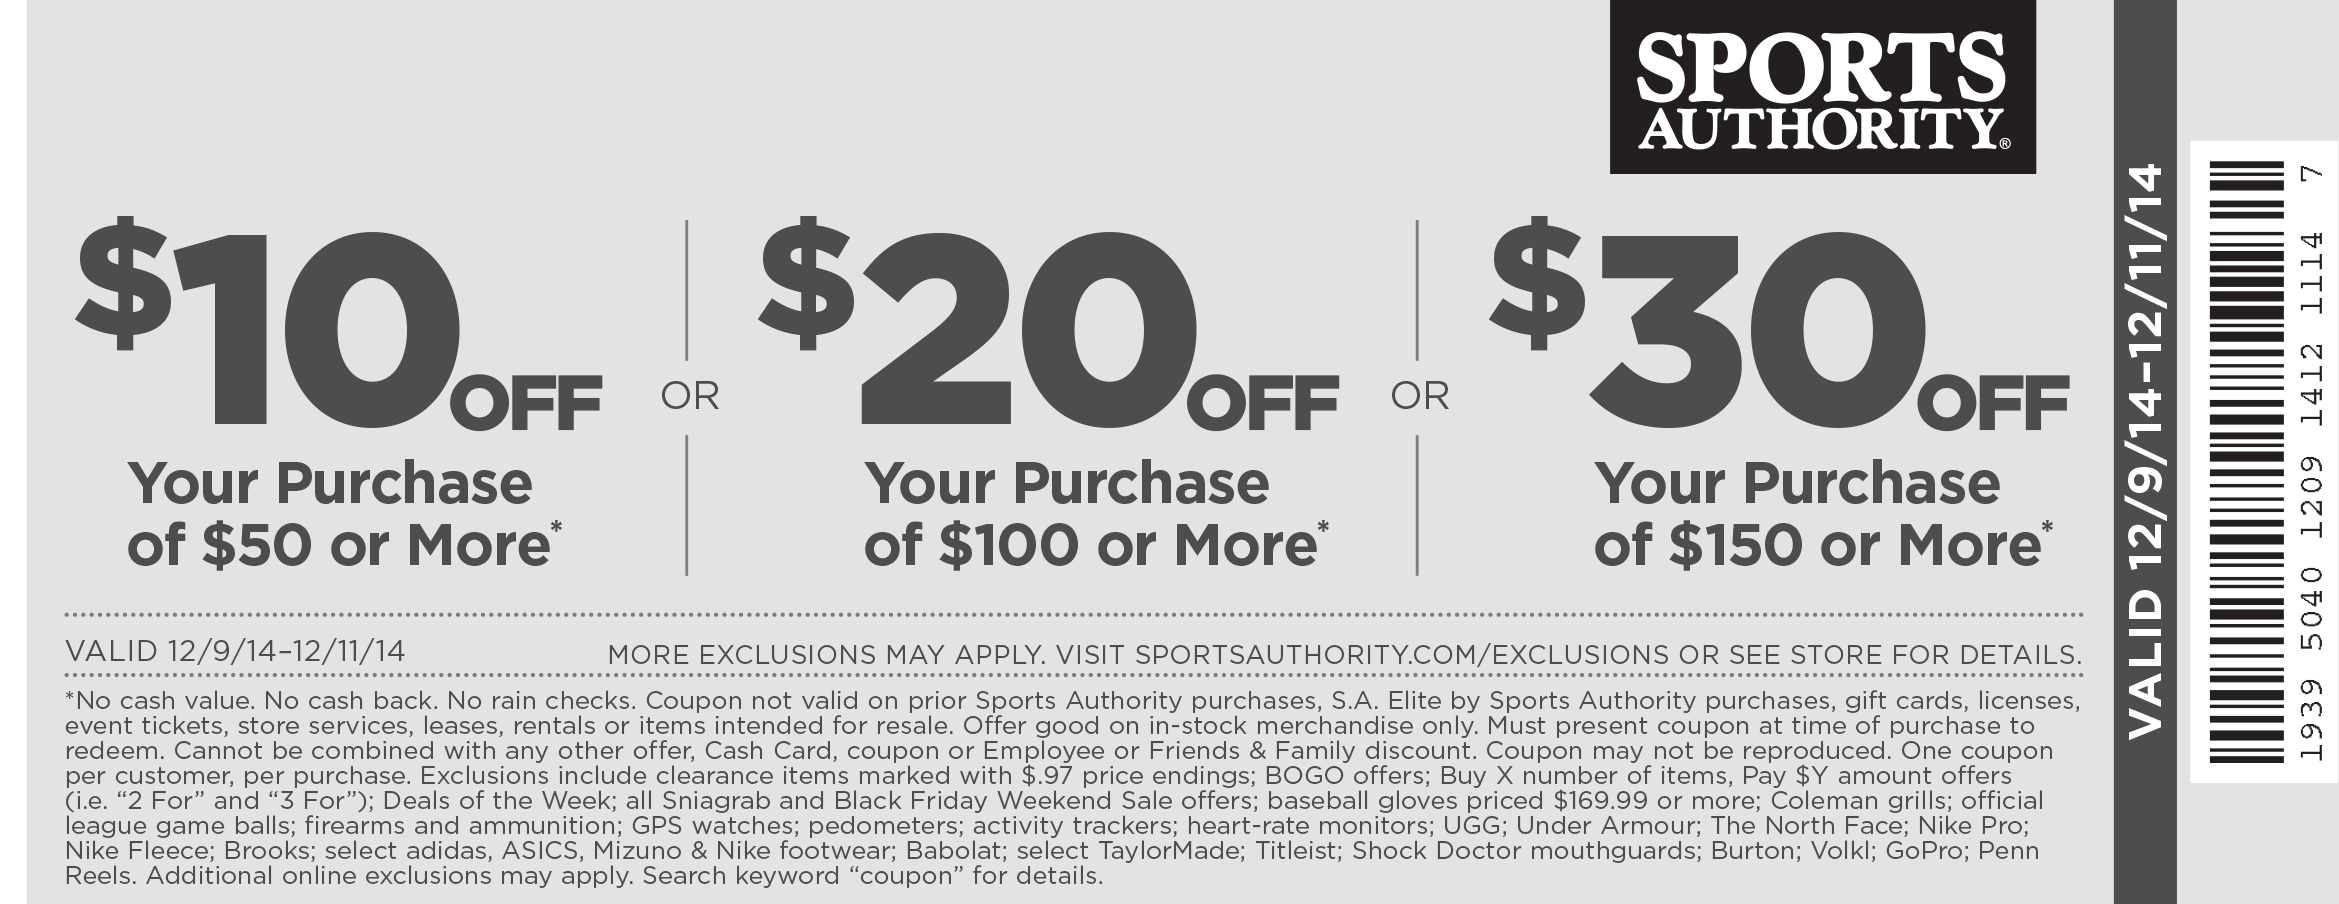 Sports authority discount coupon